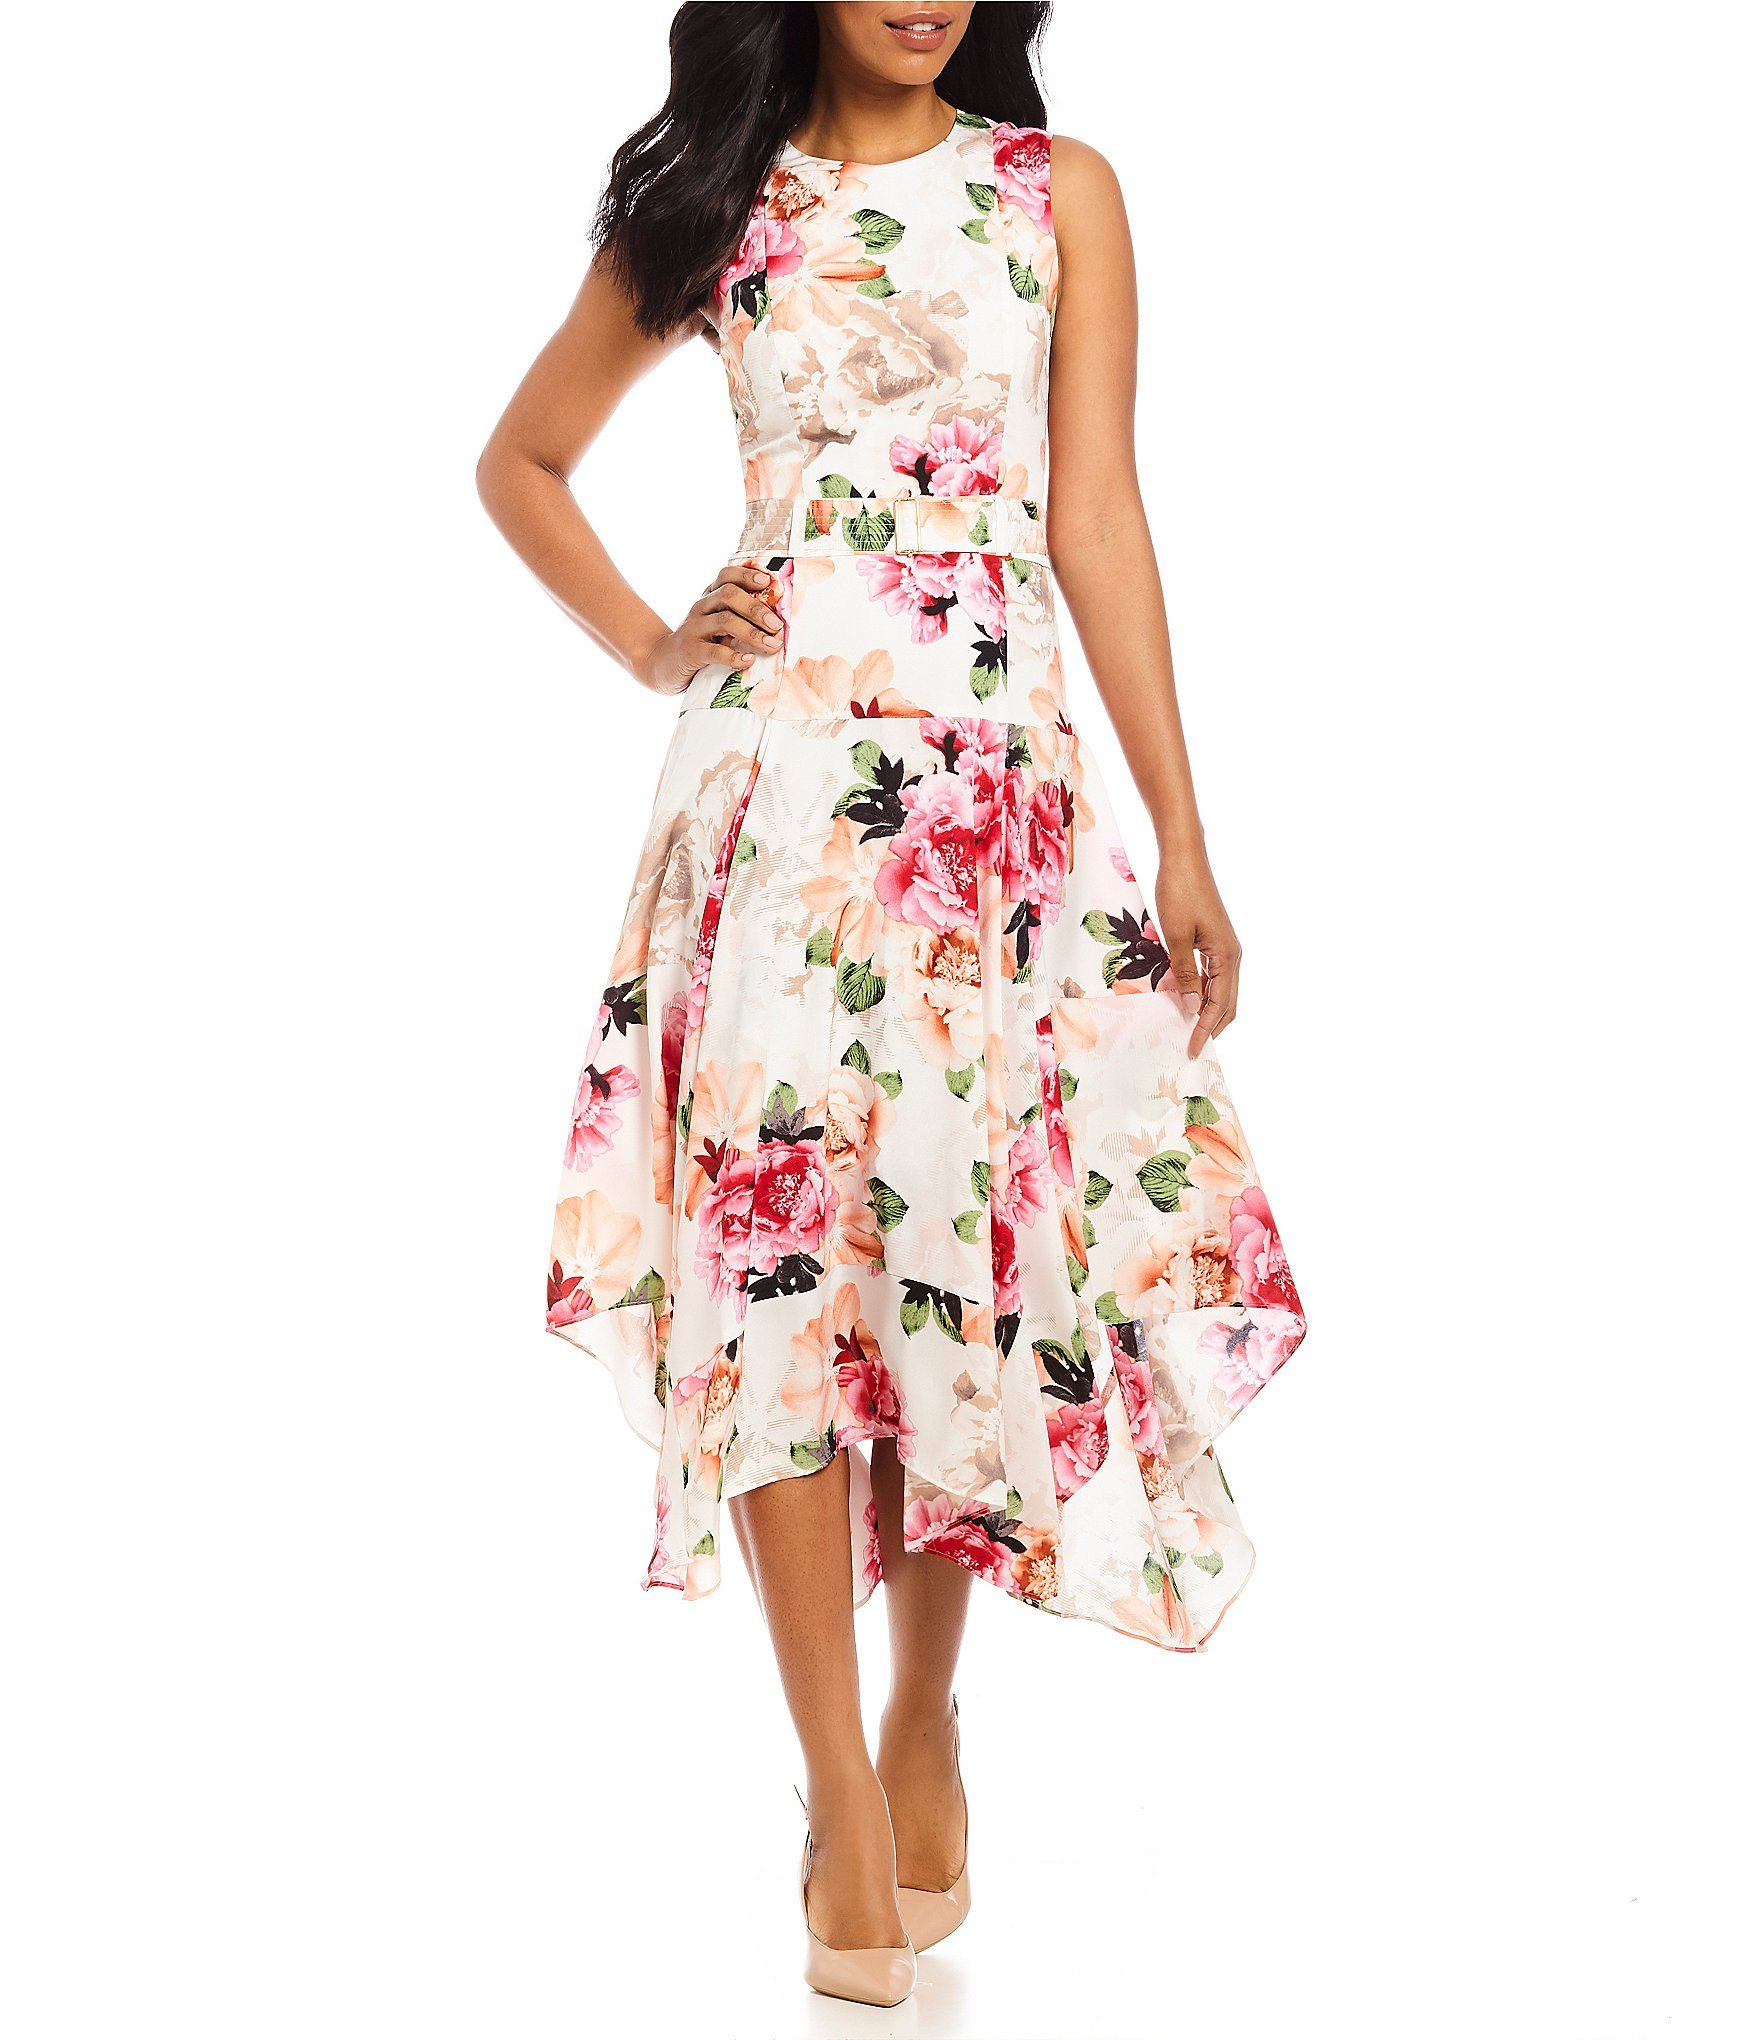 543cbfdac0c Shop for Calvin Klein Pieced Floral Print Belted Handkerchief Hem Midi Dress  at Dillards.com. Visit Dillards.com to find clothing, accessories, shoes,  ...